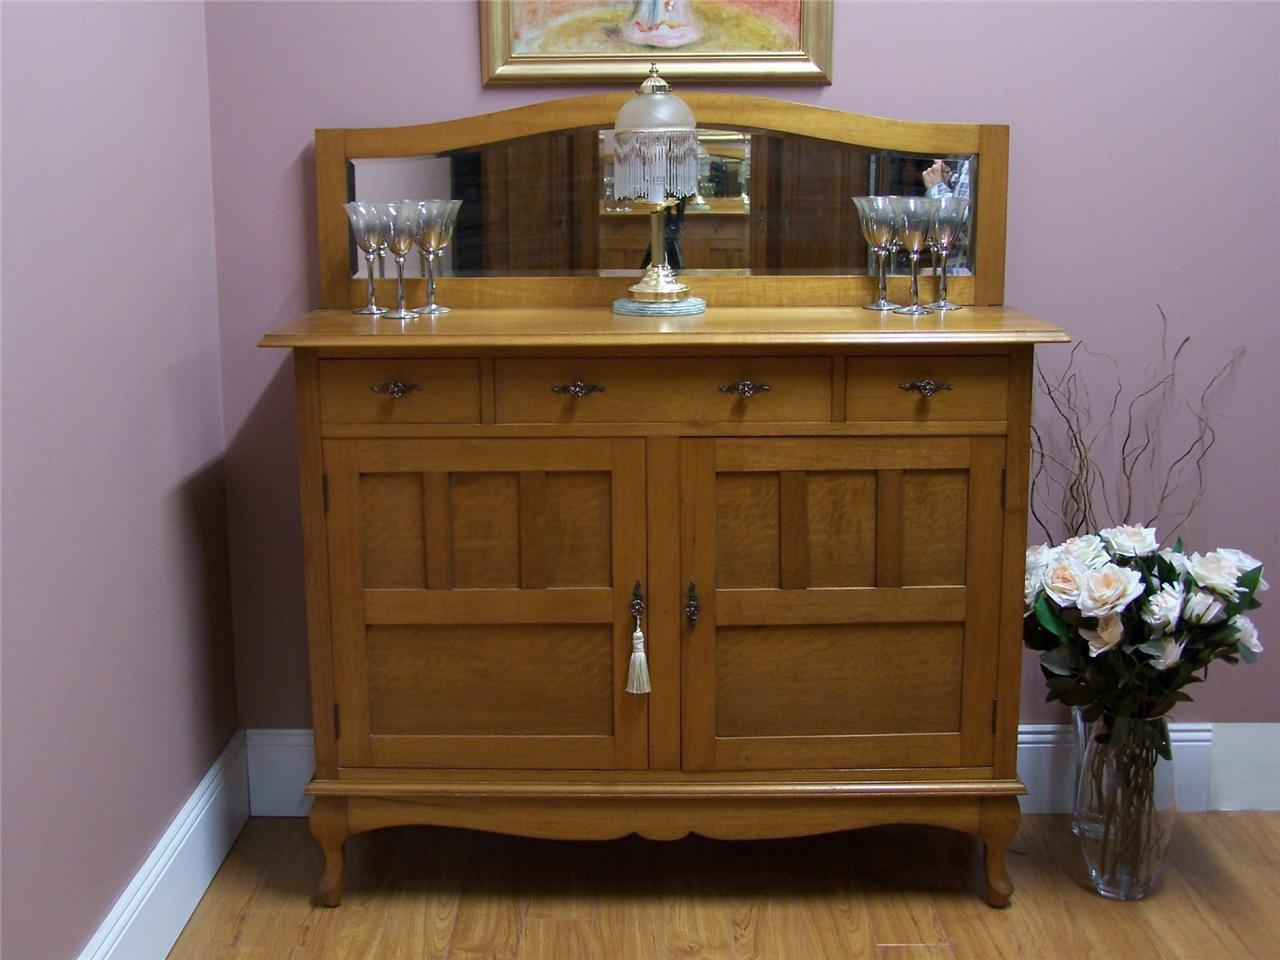 Ebay Used Kitchen Cabinets Image 1 Solid Wood Kitchen Cabinets Ebay Sink Used